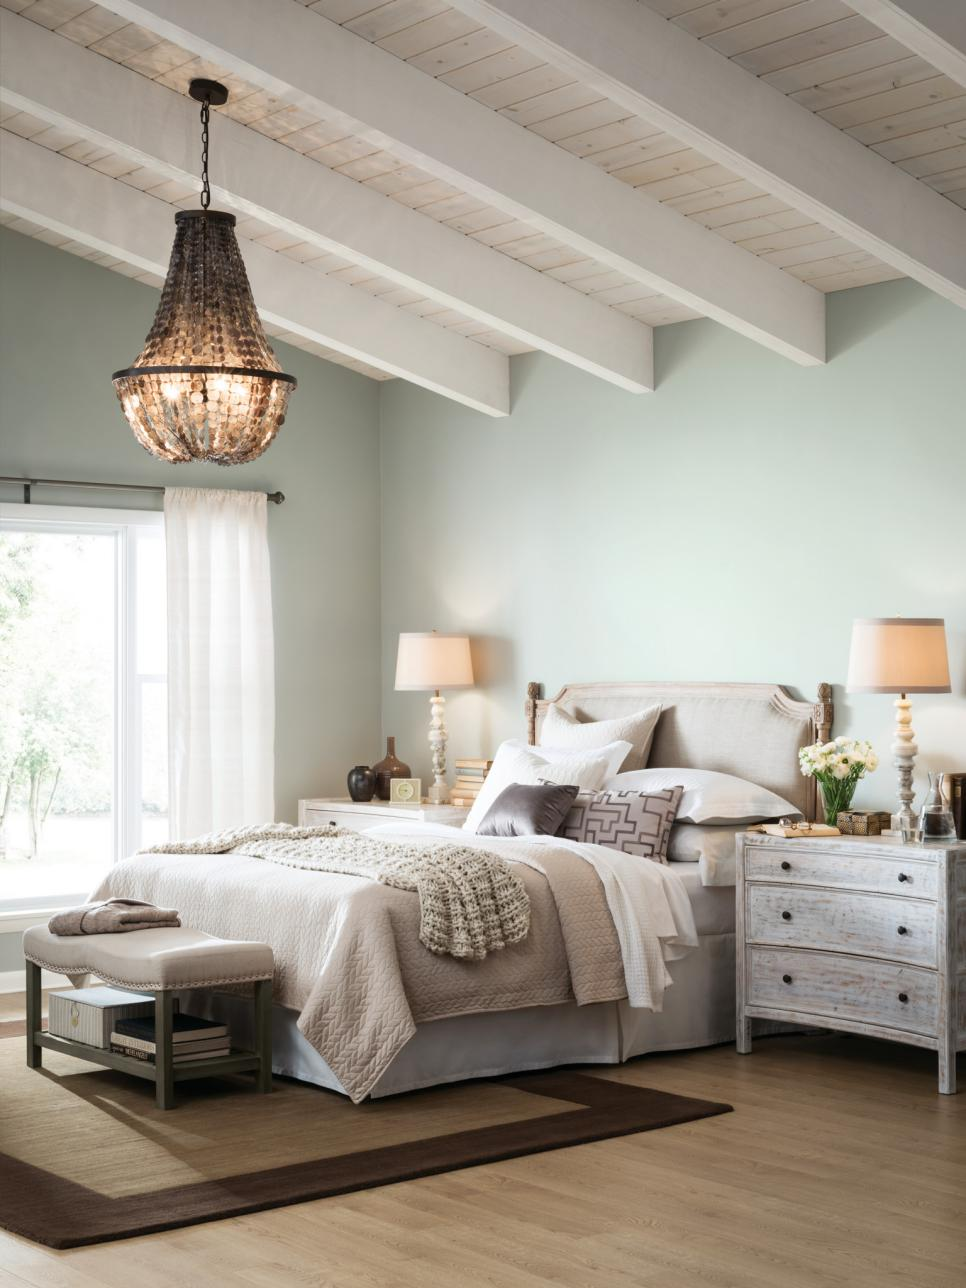 25 master bedroom decorating ideas designs design on master bedroom wall color id=21457